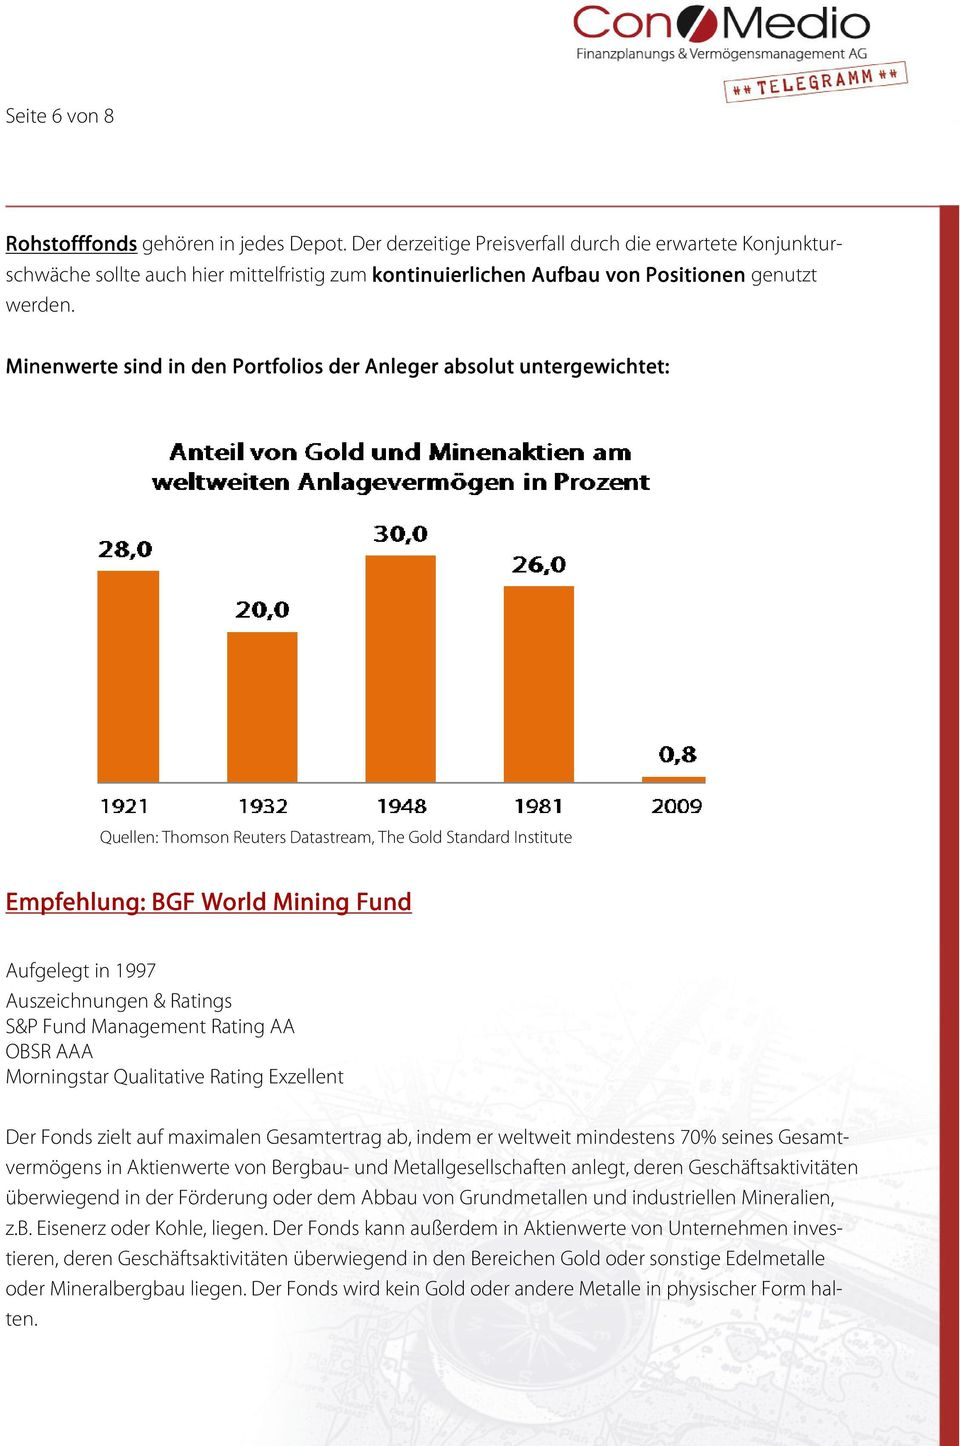 Minenwerte sind in den Portfolios der Anleger absolut untergewichtet: Quellen: Thomson Reuters Datastream, The Gold Standard Institute Empfehlung: BGF World Mining Fund Aufgelegt in 1997